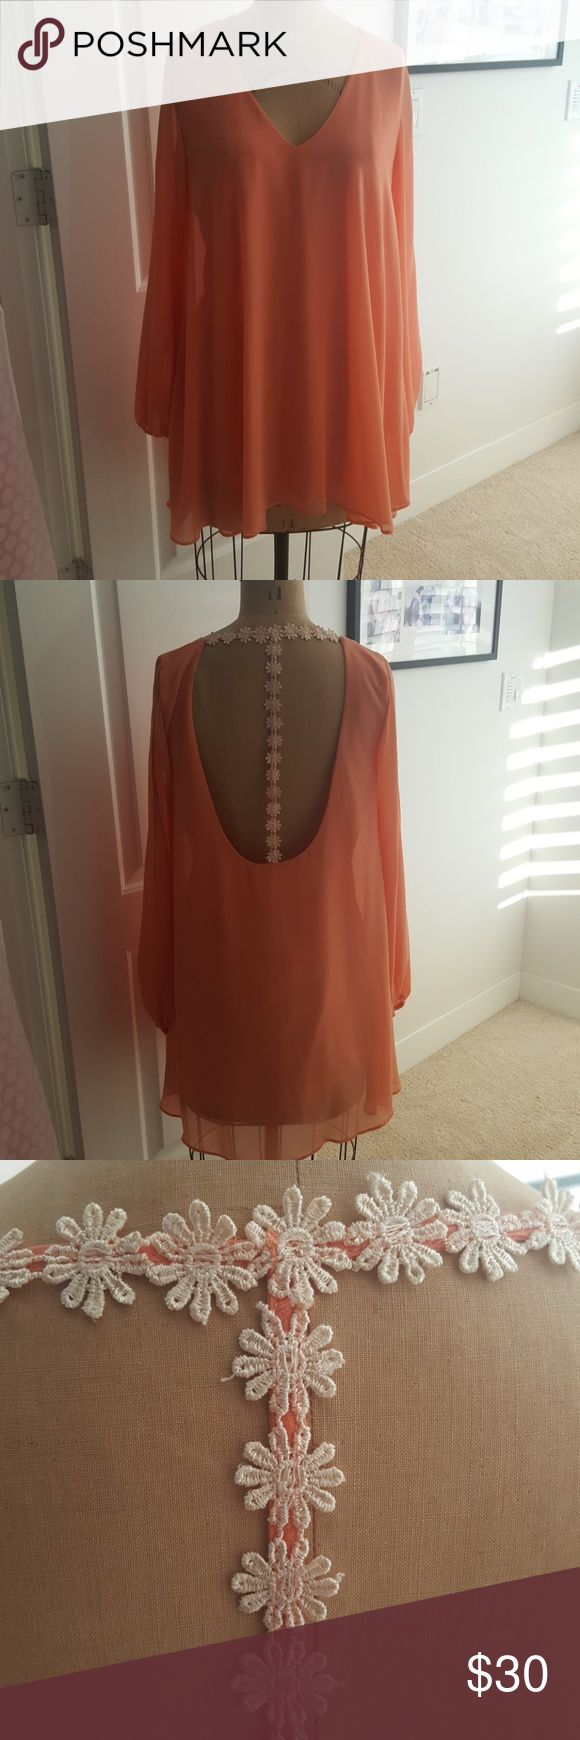 """trapeze dress peach sheer trapeze dress with same color lining, elastic wrists with split sleeve and open back with daise flower """"T"""" applique Cotton Candy Dresses Mini"""